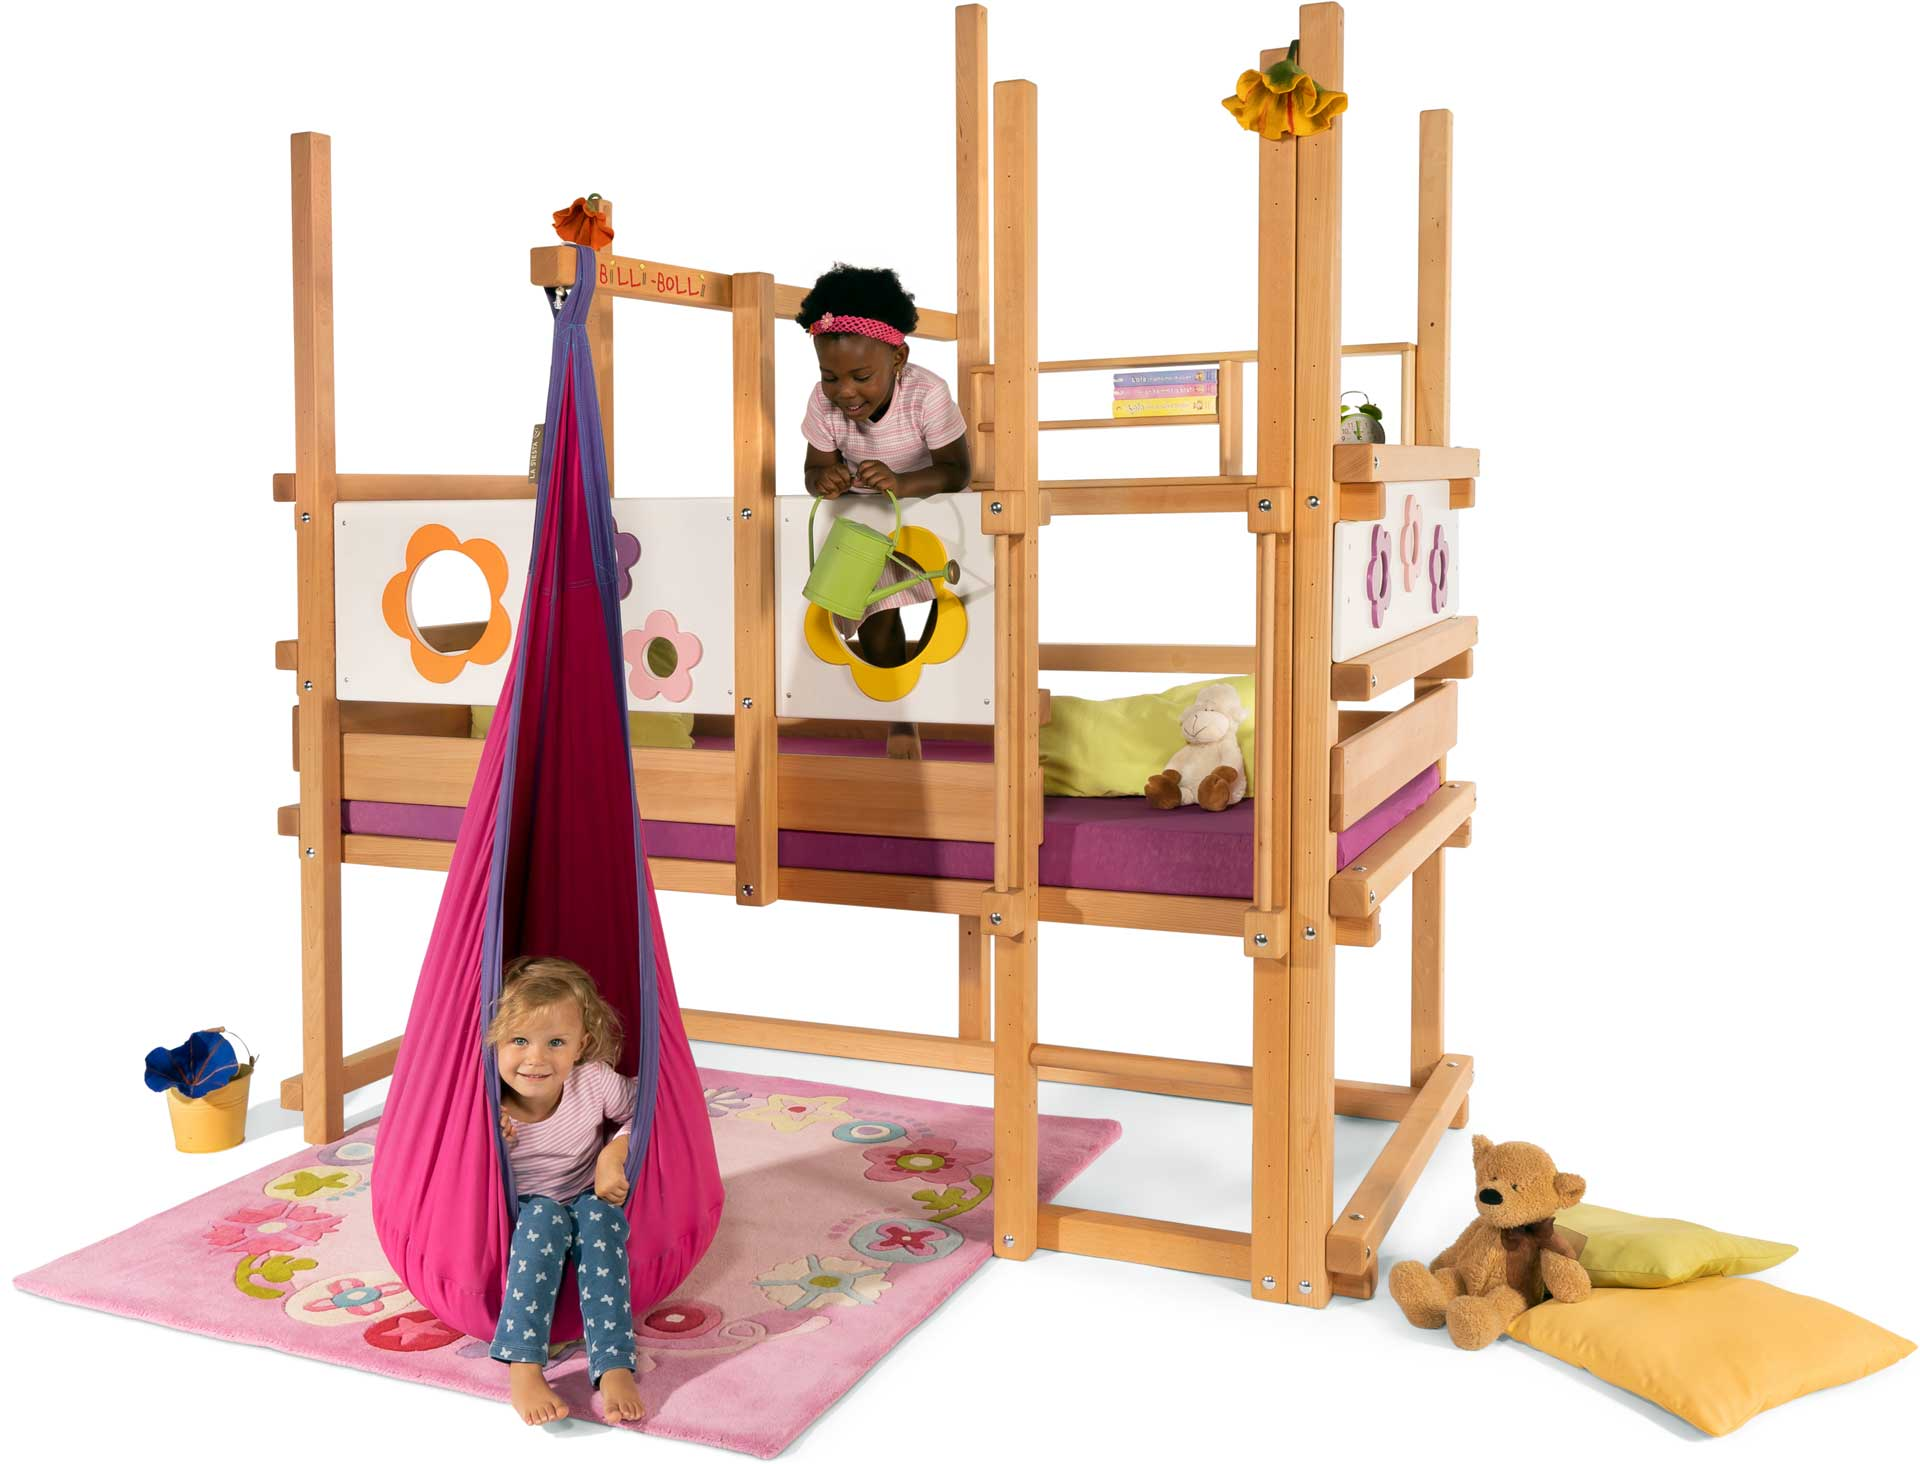 Loft Bed Adjustable by Age. Assembly Height 3